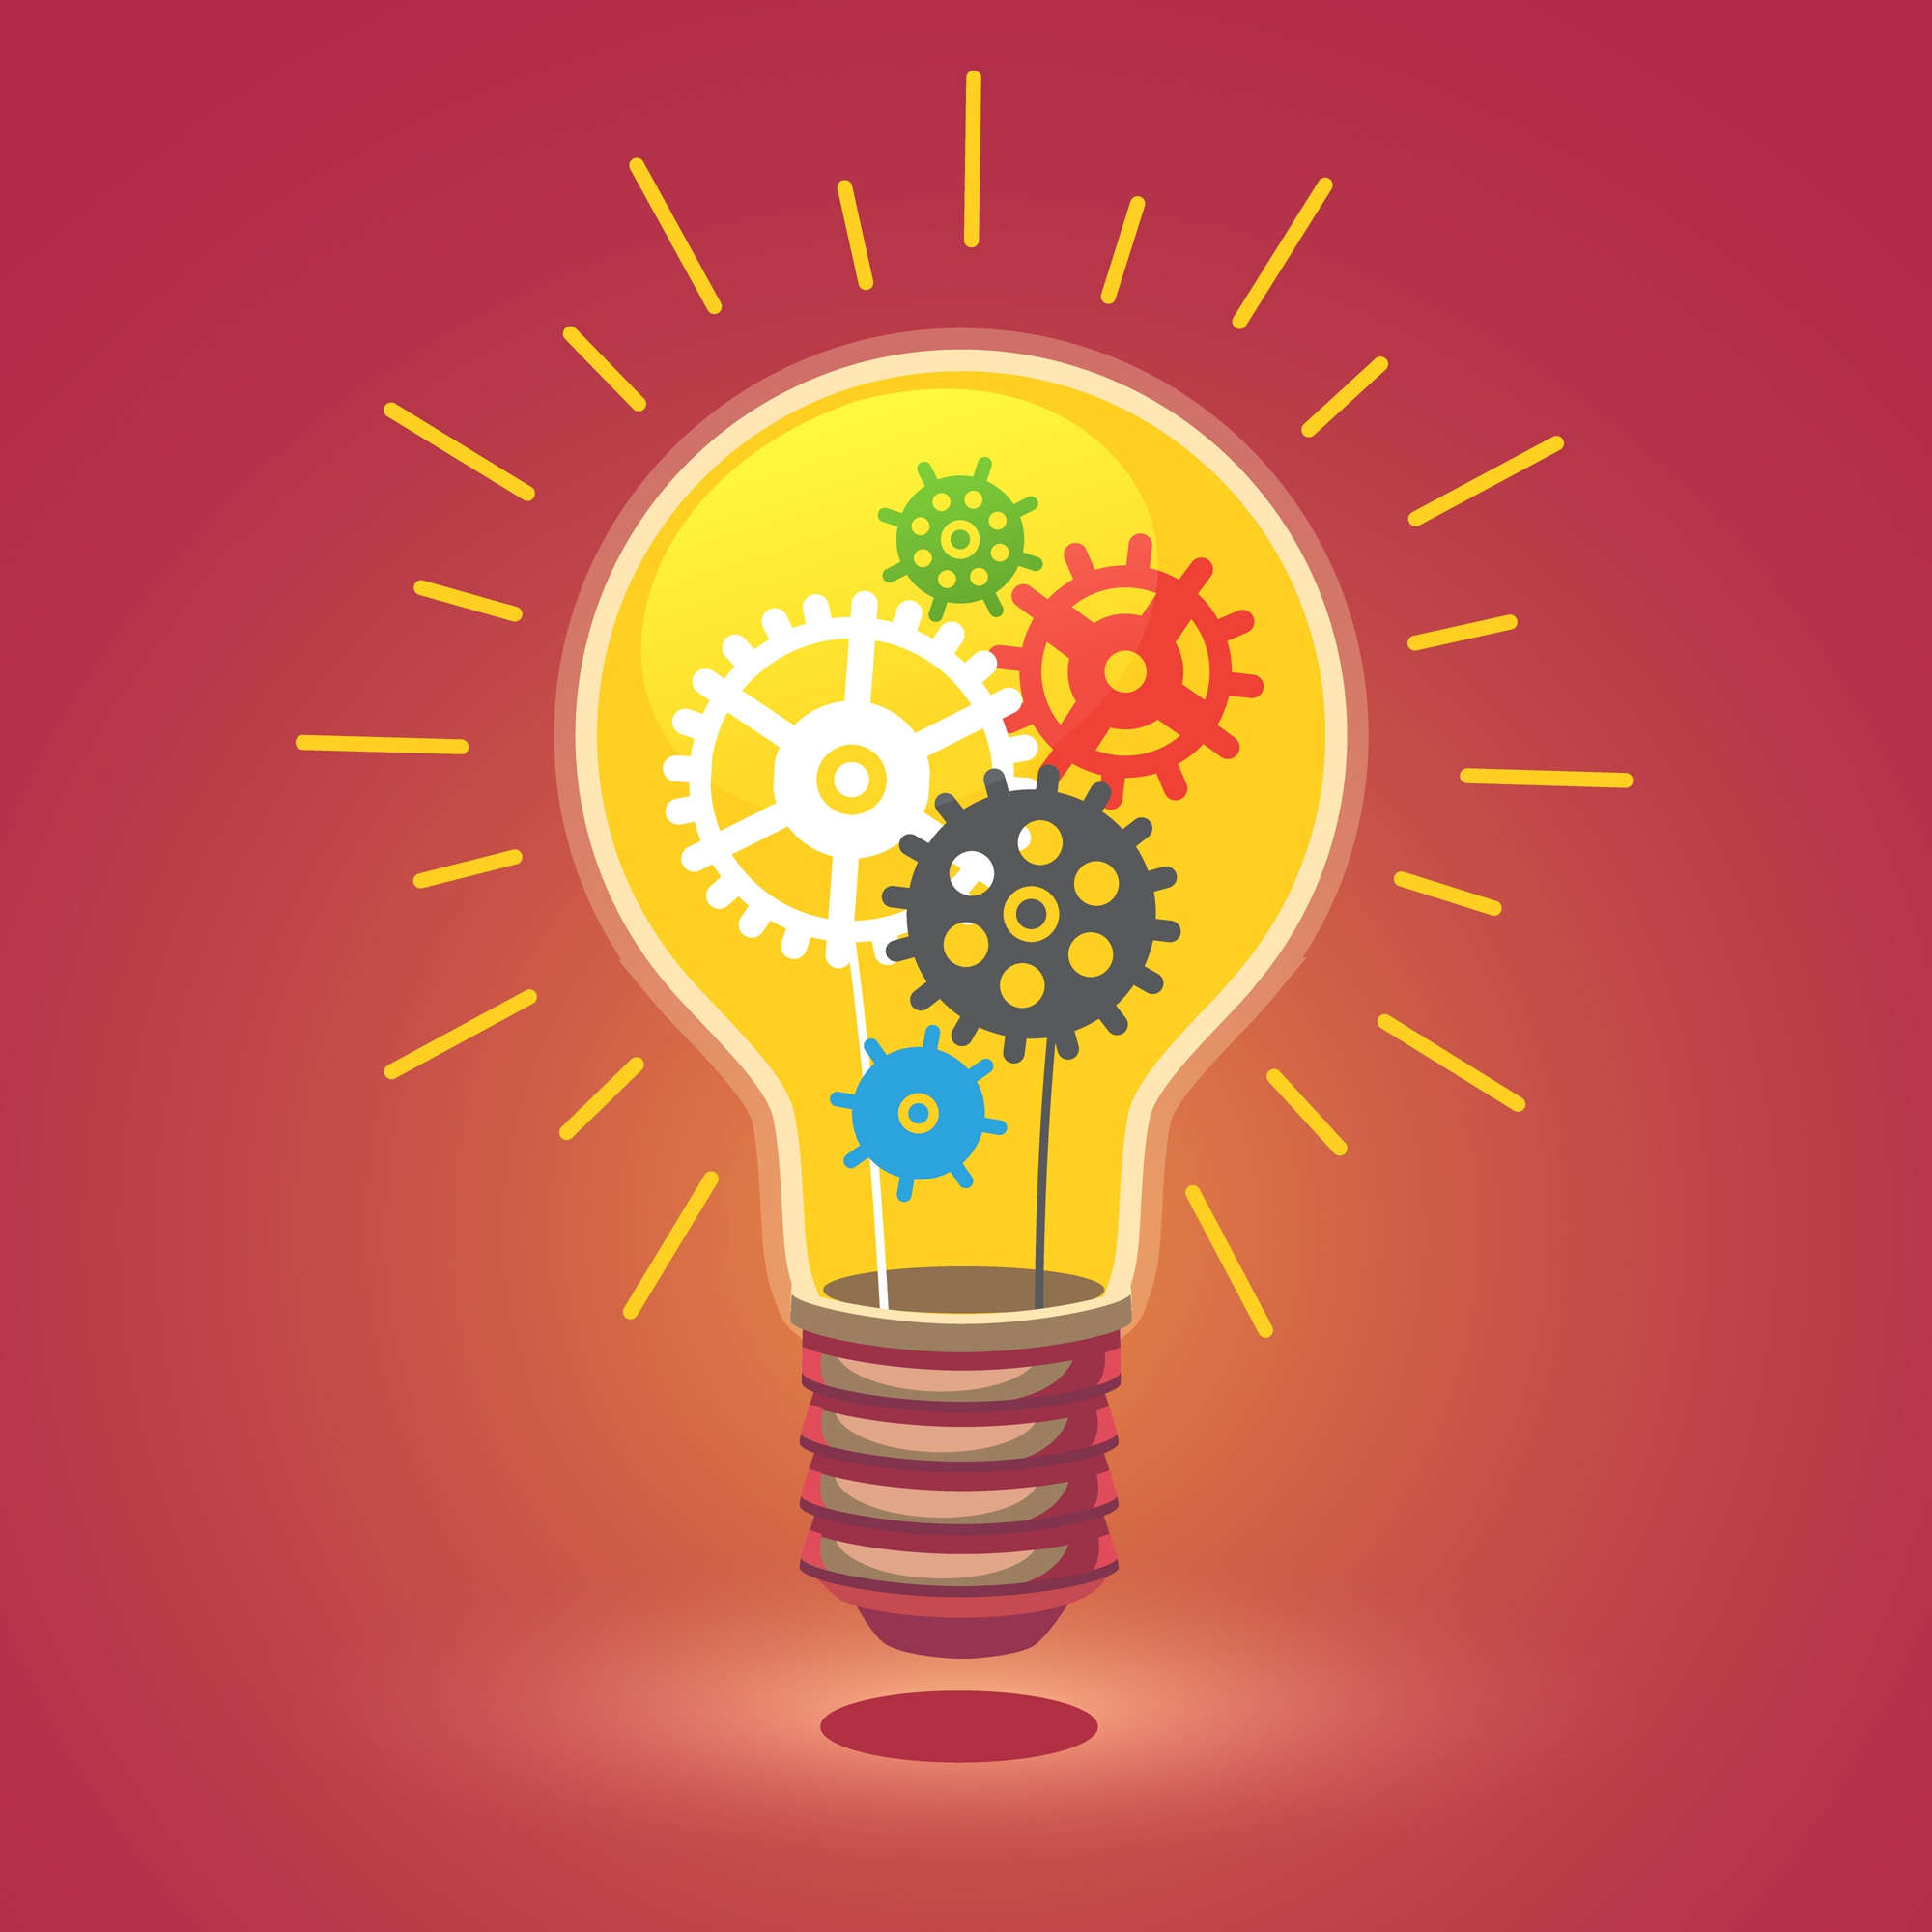 Shining bright idea light bulb with cogs